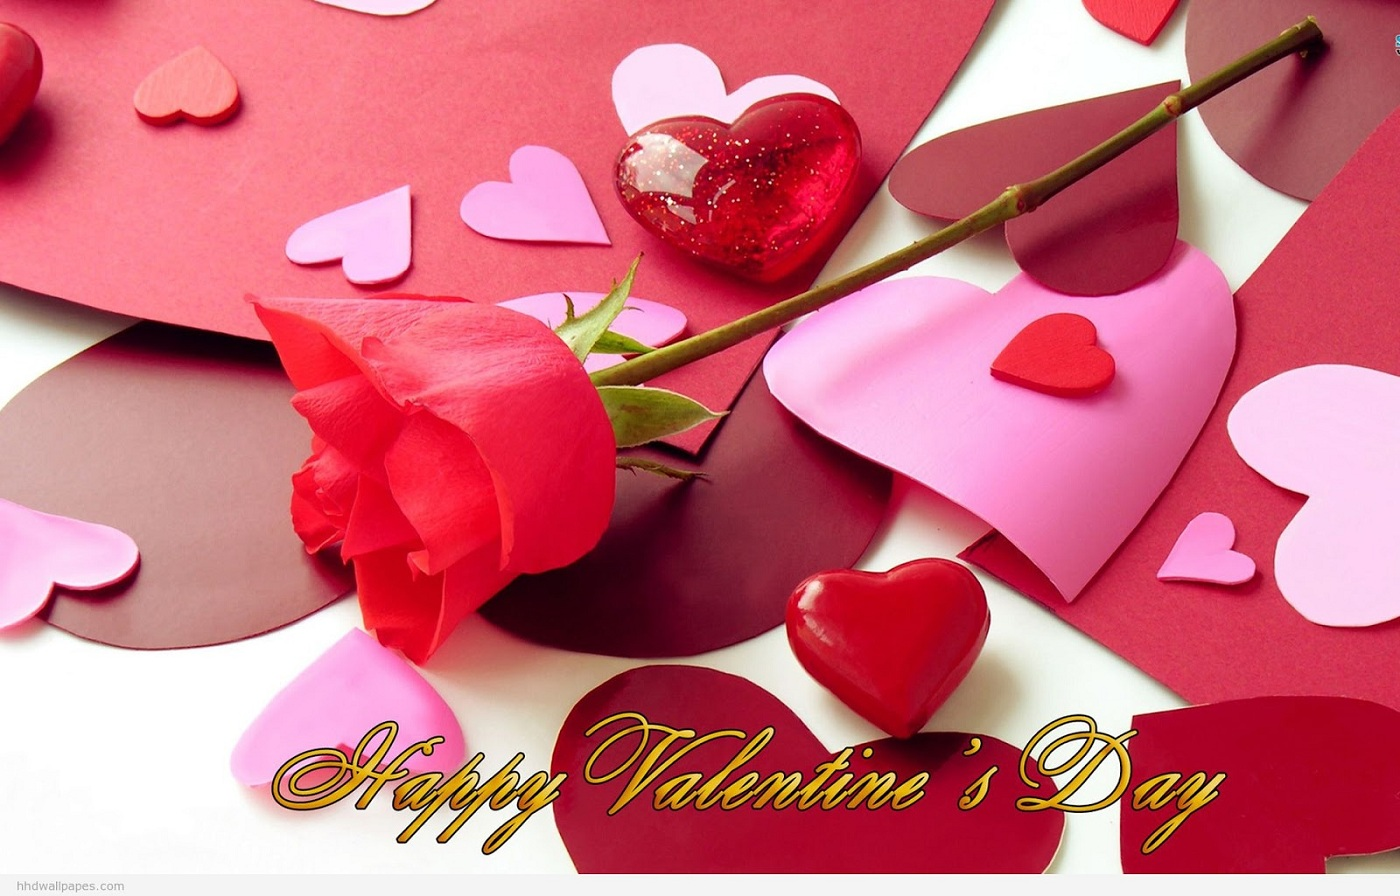 happy valentines day facebook images 2017 - Happy Valentine Day Poems